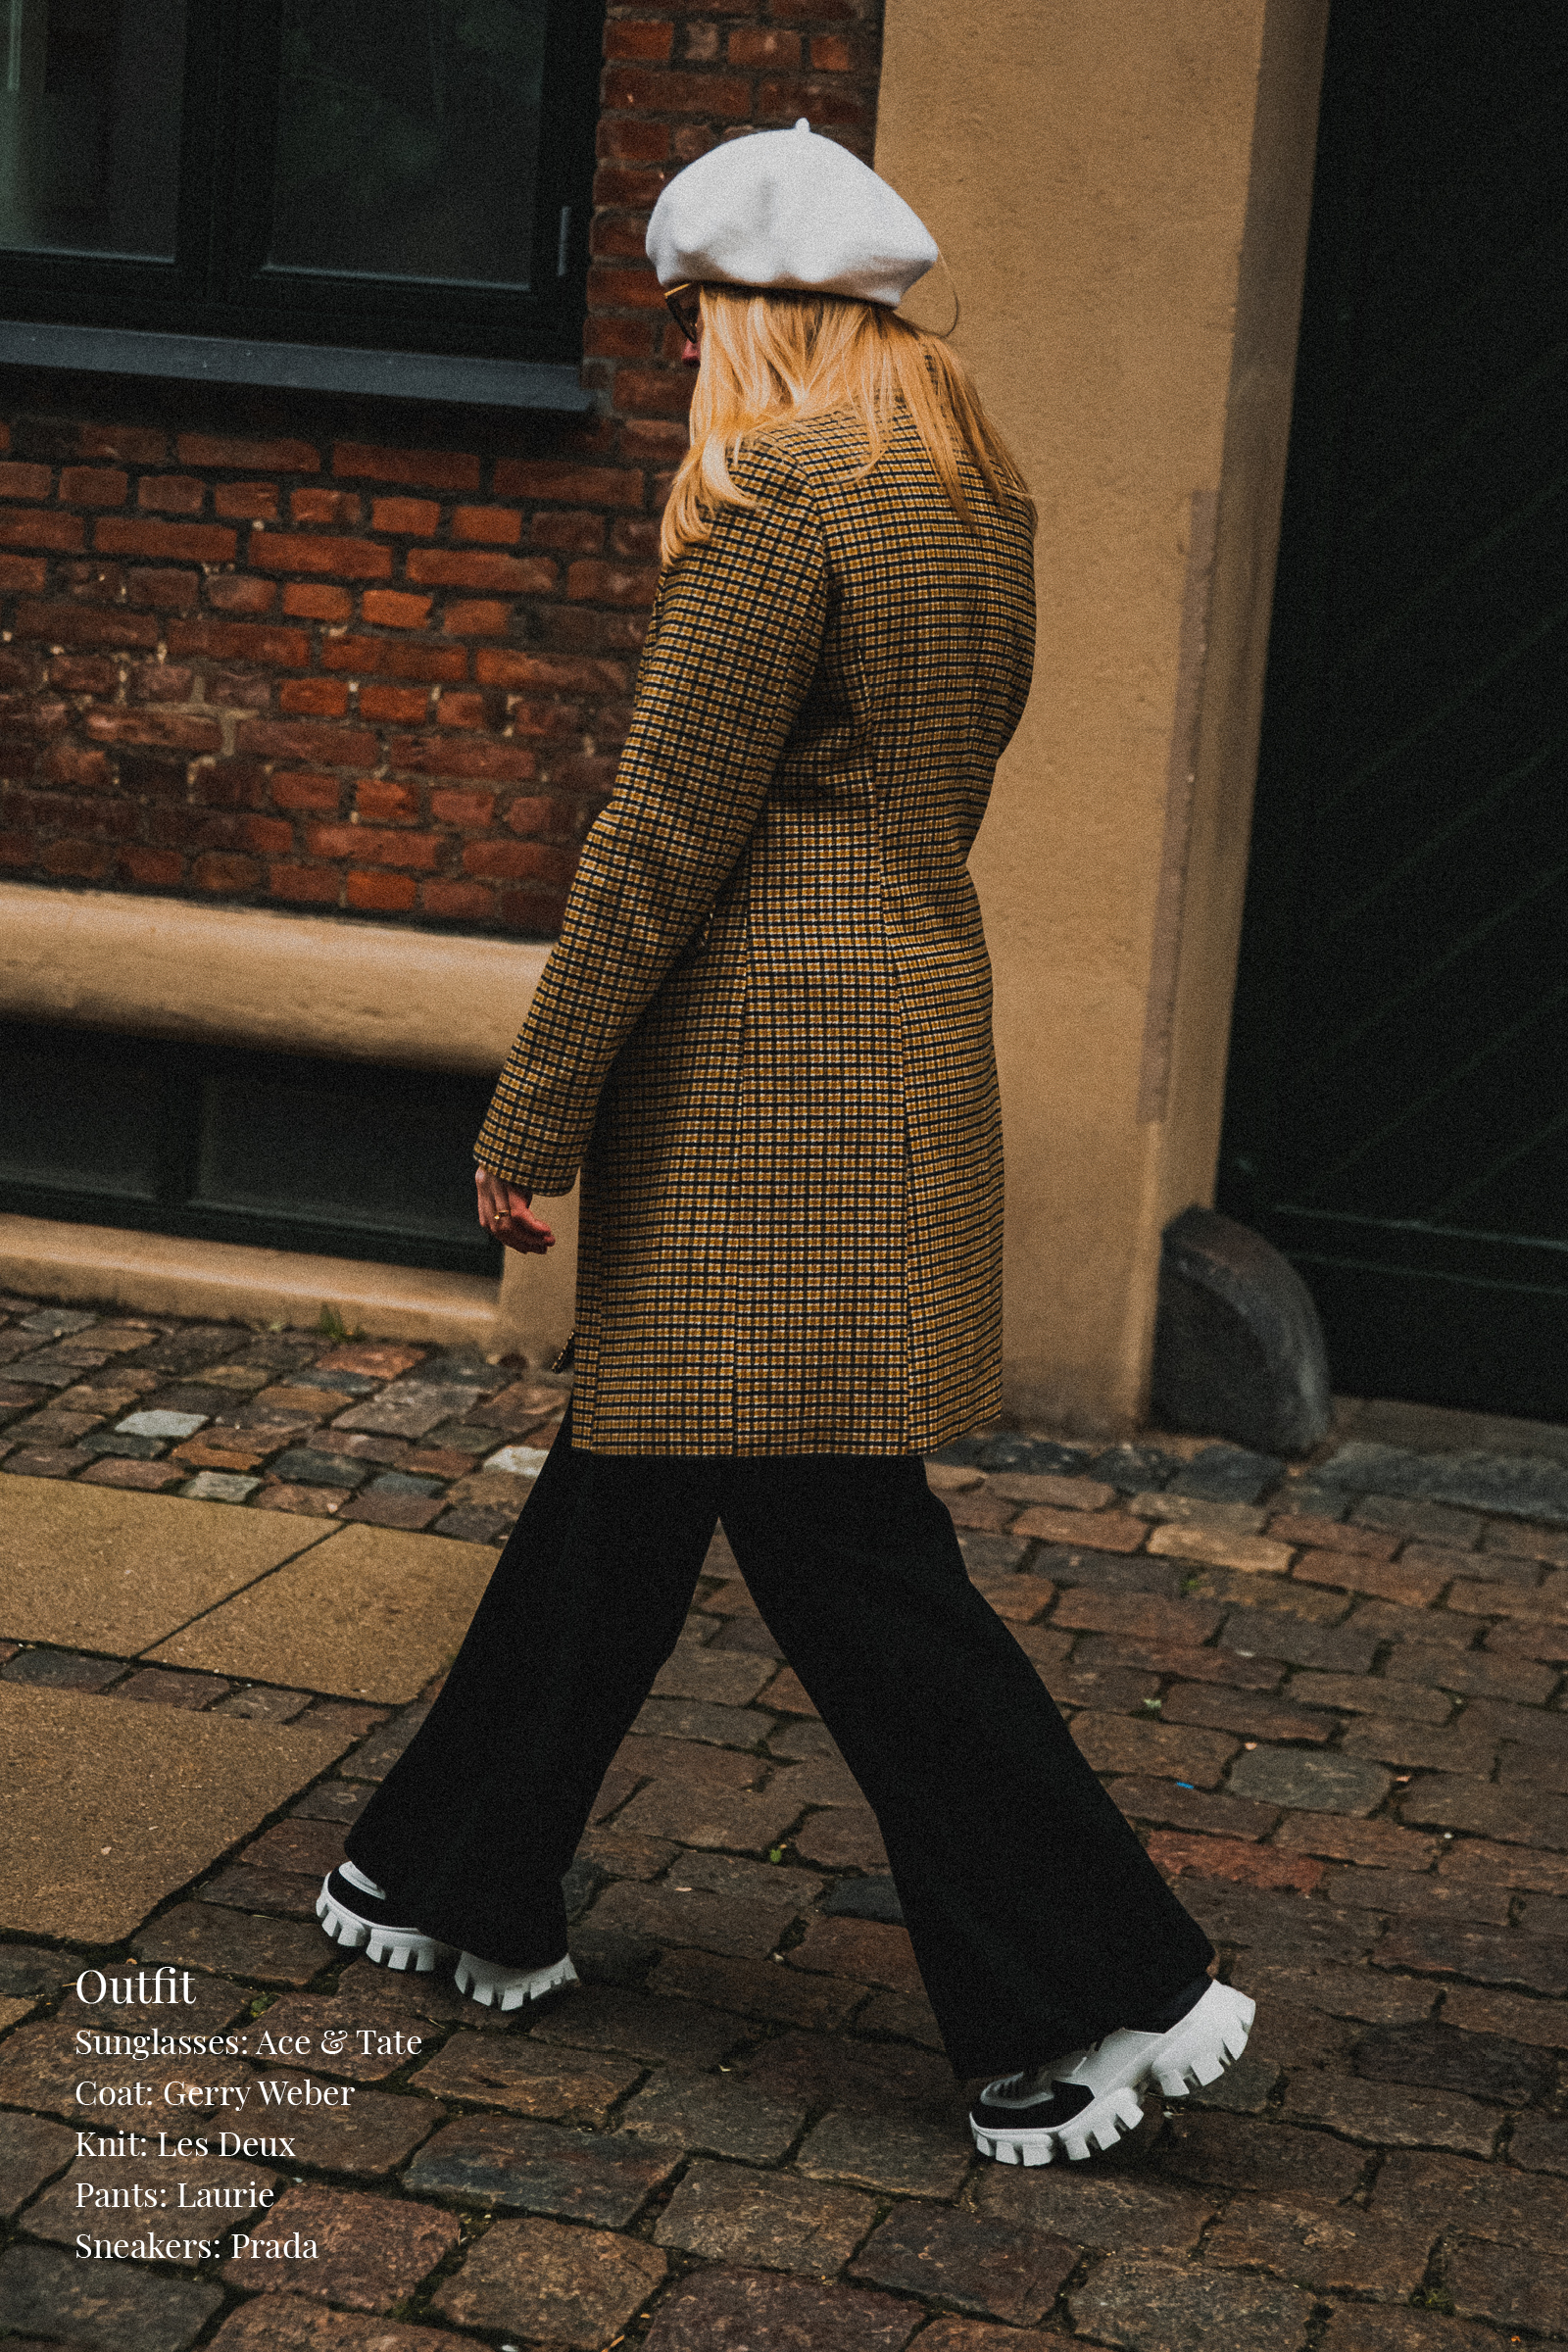 Parisian style inspiration for men and women. Woman wearing beret and checkered double breasted coat with Prada sneakers